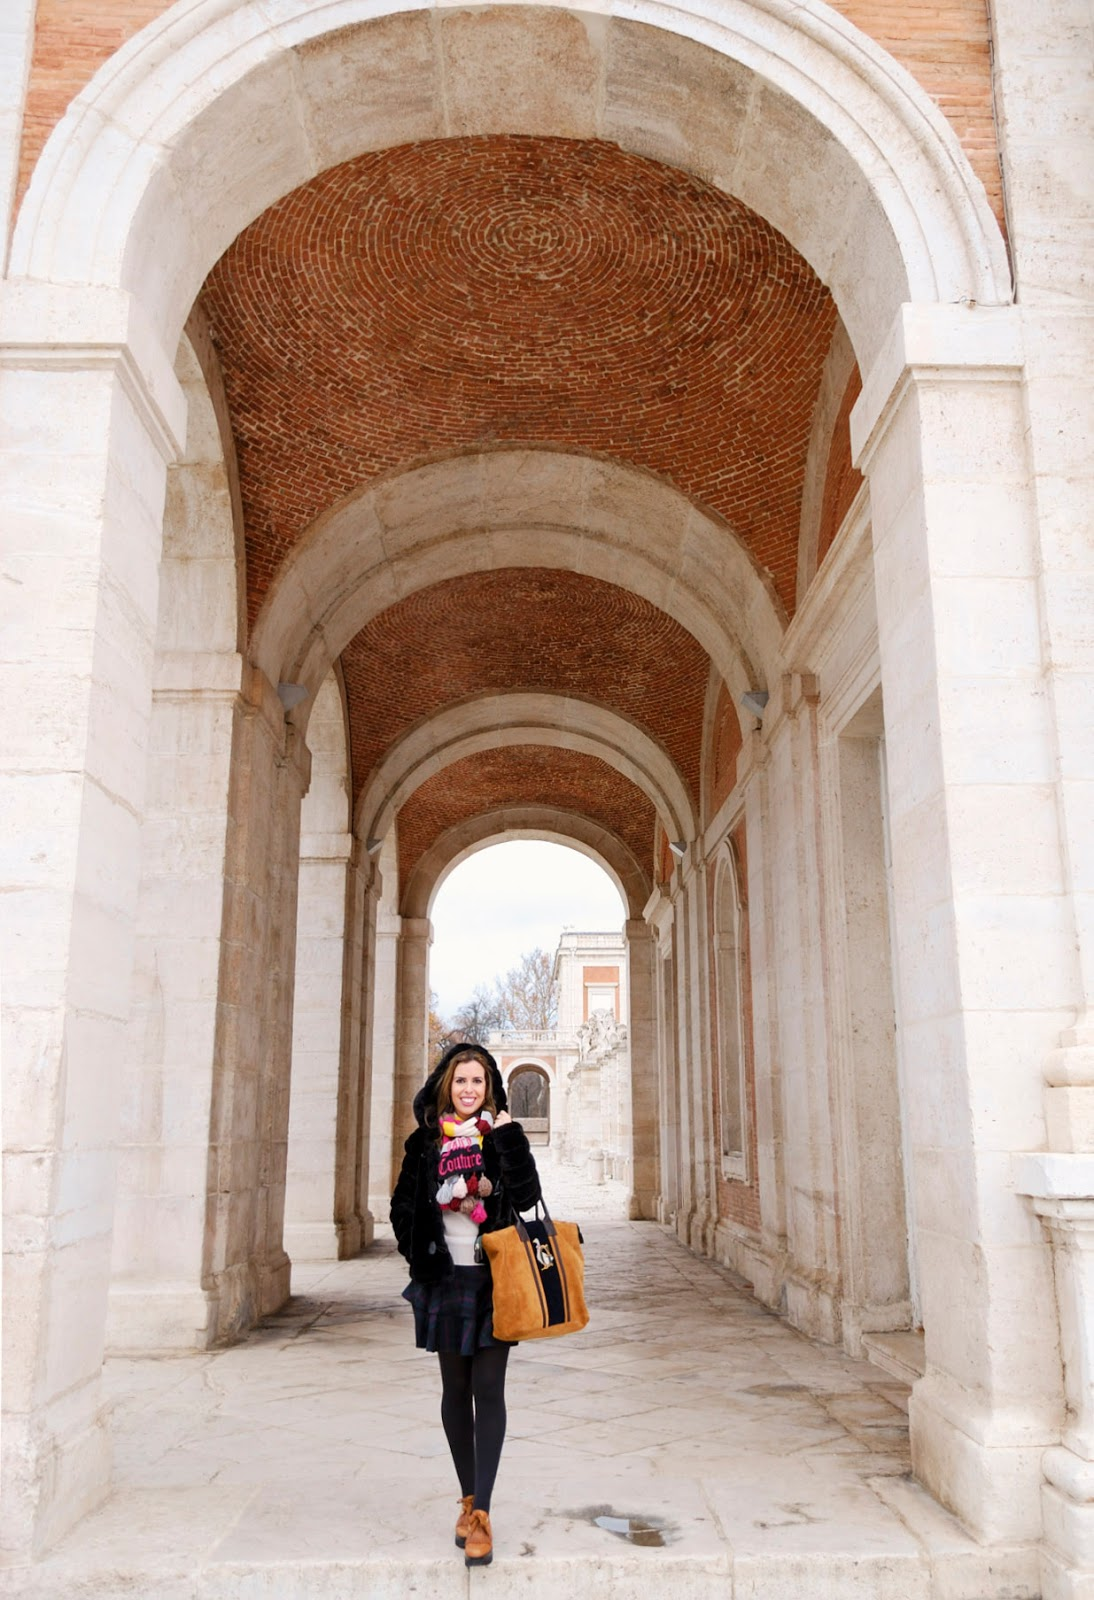 aranjuez madrid winter royal palace gardens spain travel outfit